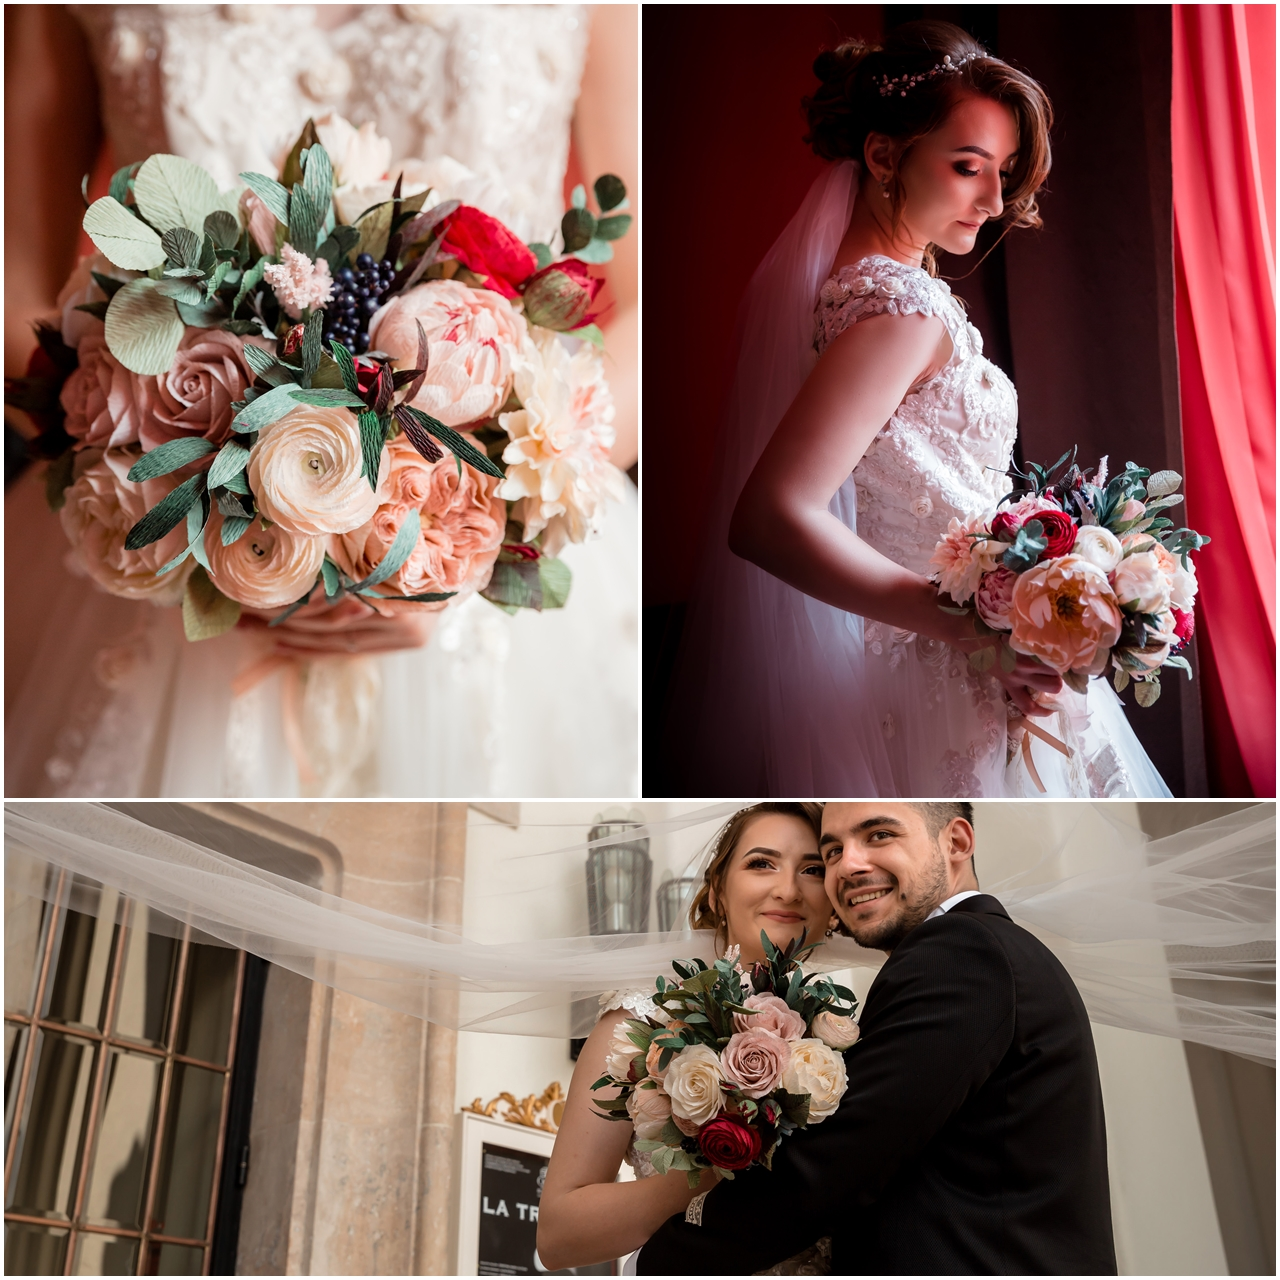 Mihai Gagiu Photo Credit - paper flowers bridal bouquet